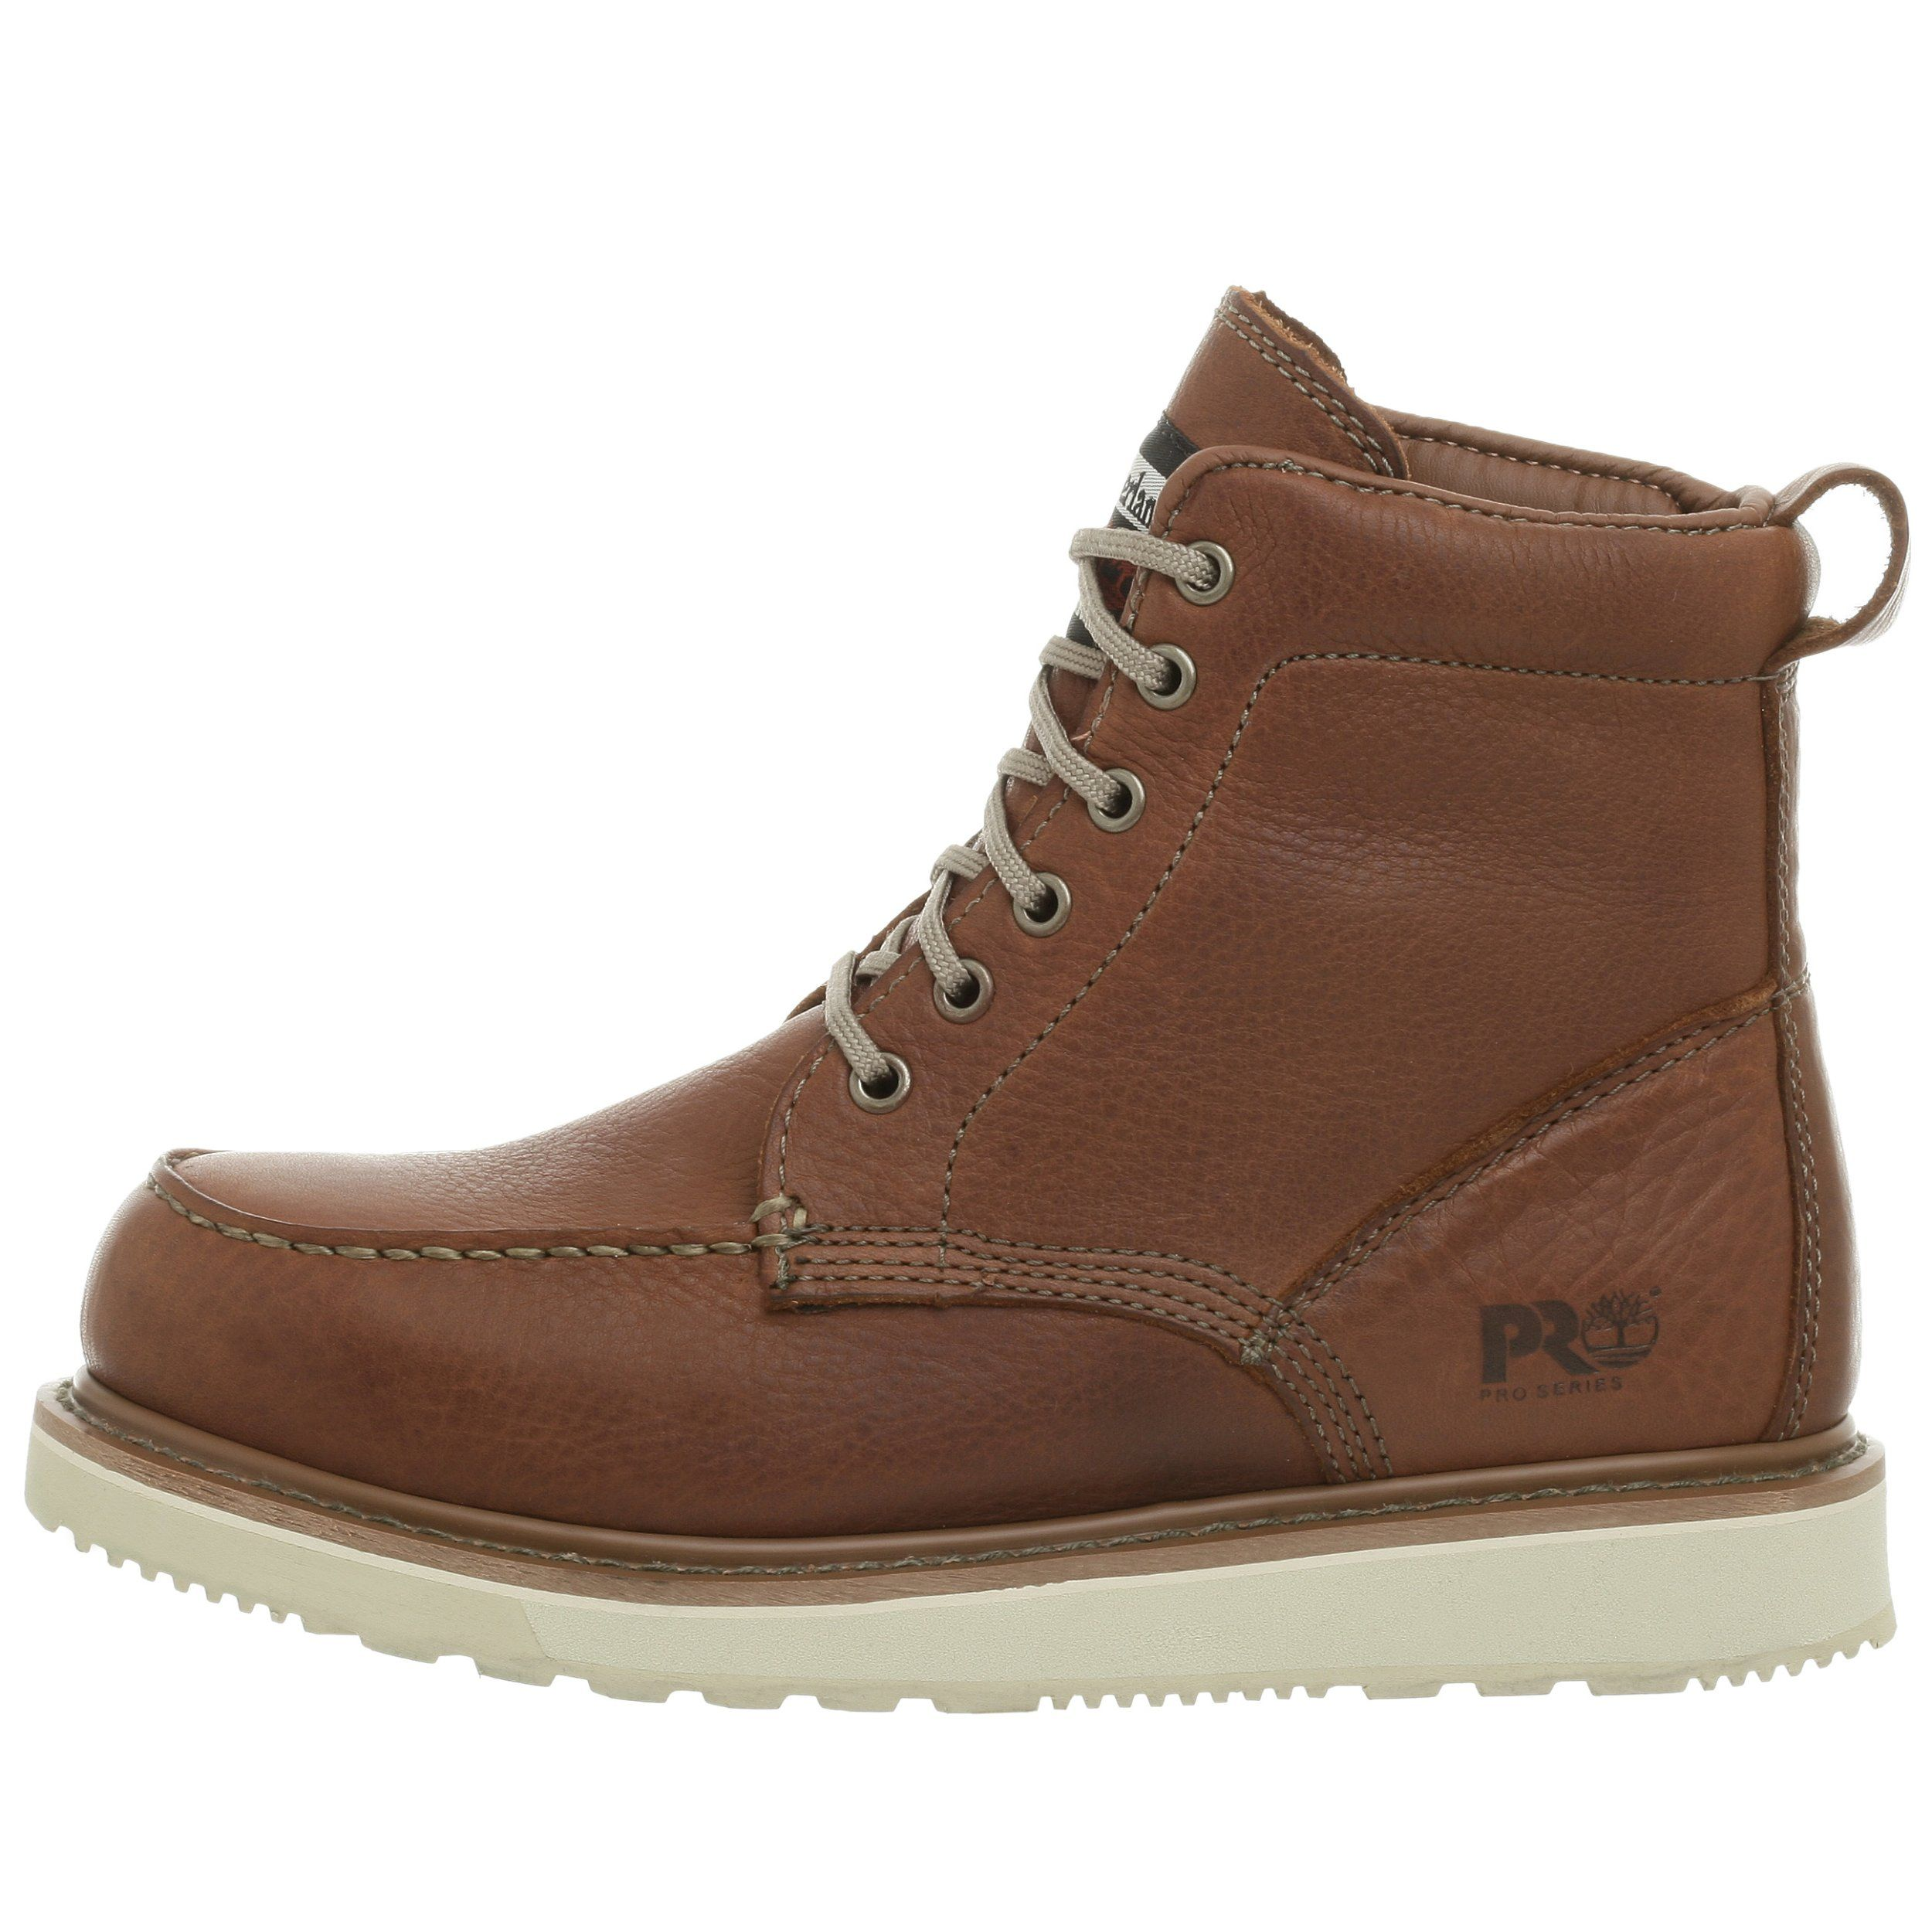 d0d7653a314 Amazon.com: Timberland PRO Men's Wedge Sole Six-Inch Boot: Clothing ...